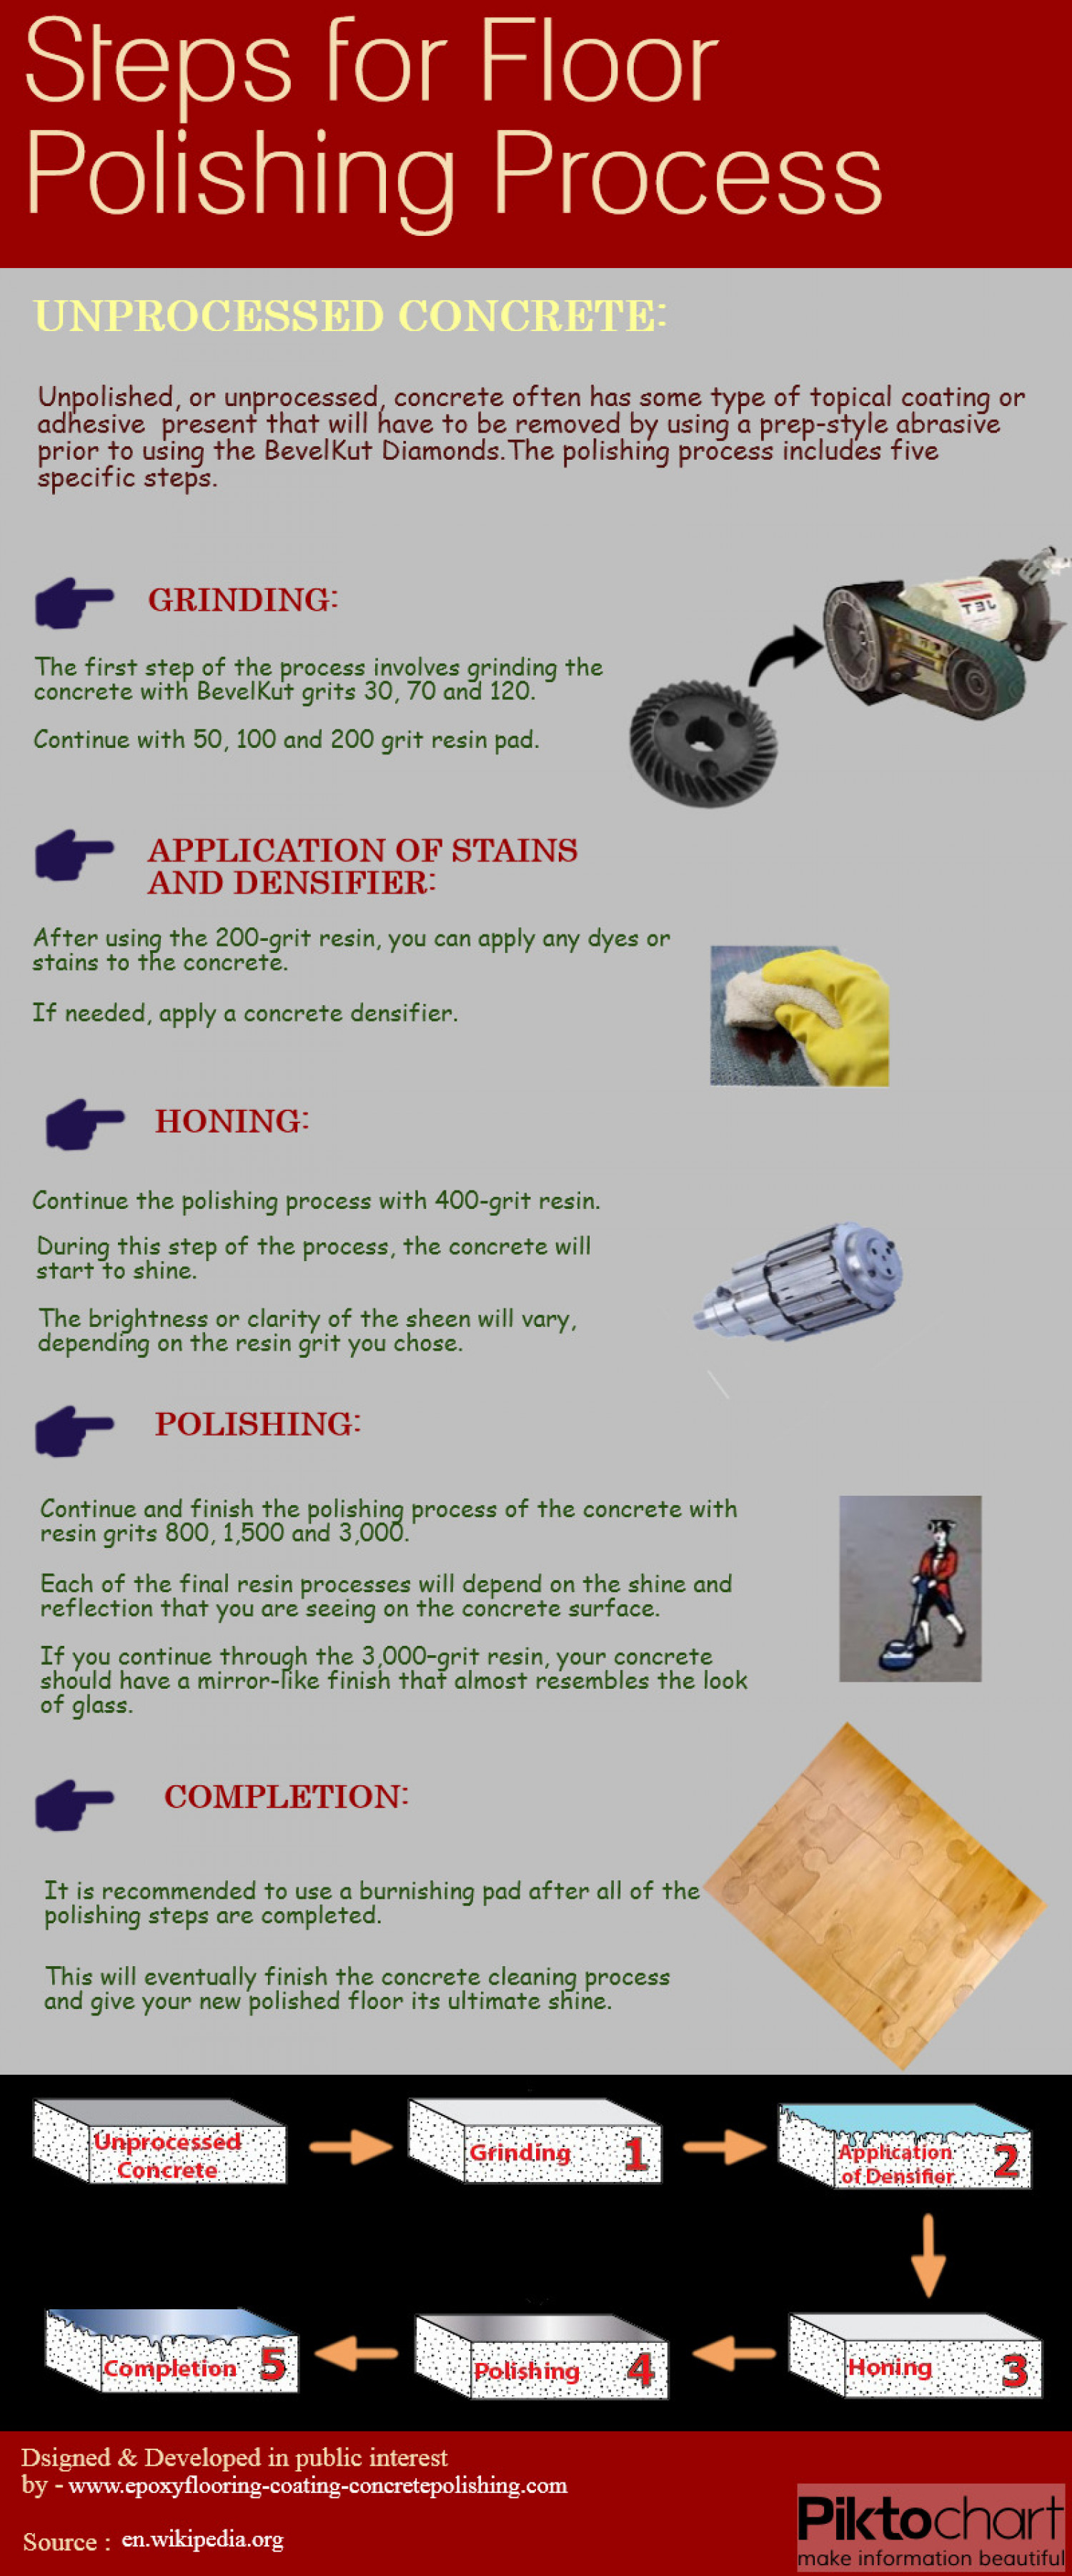 Steps for Floor Polishing Process Infographic